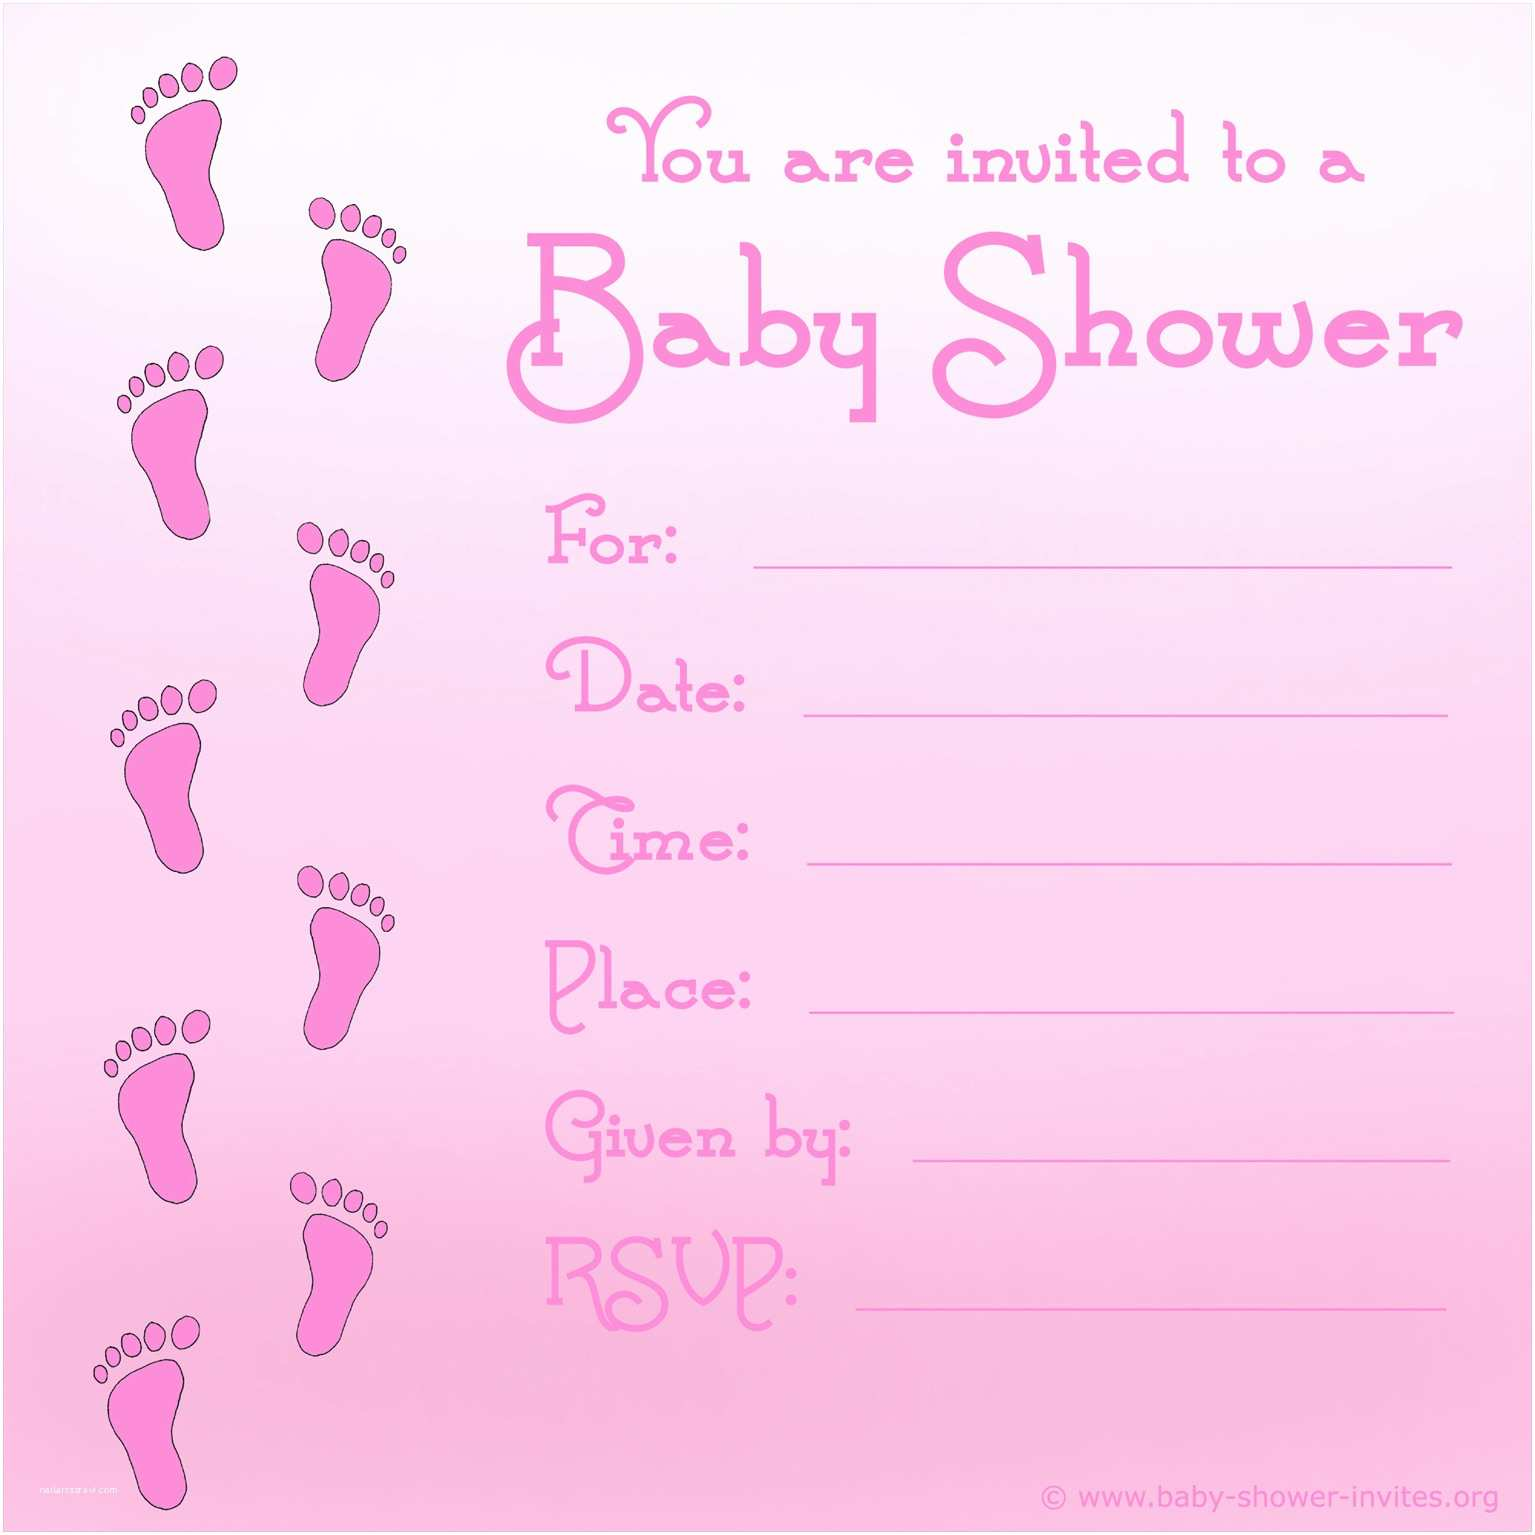 photo regarding Free Printable Baby Shower Invitations for Girls identified as Downloadable Little one Shower Invites Cost-free Child Shower